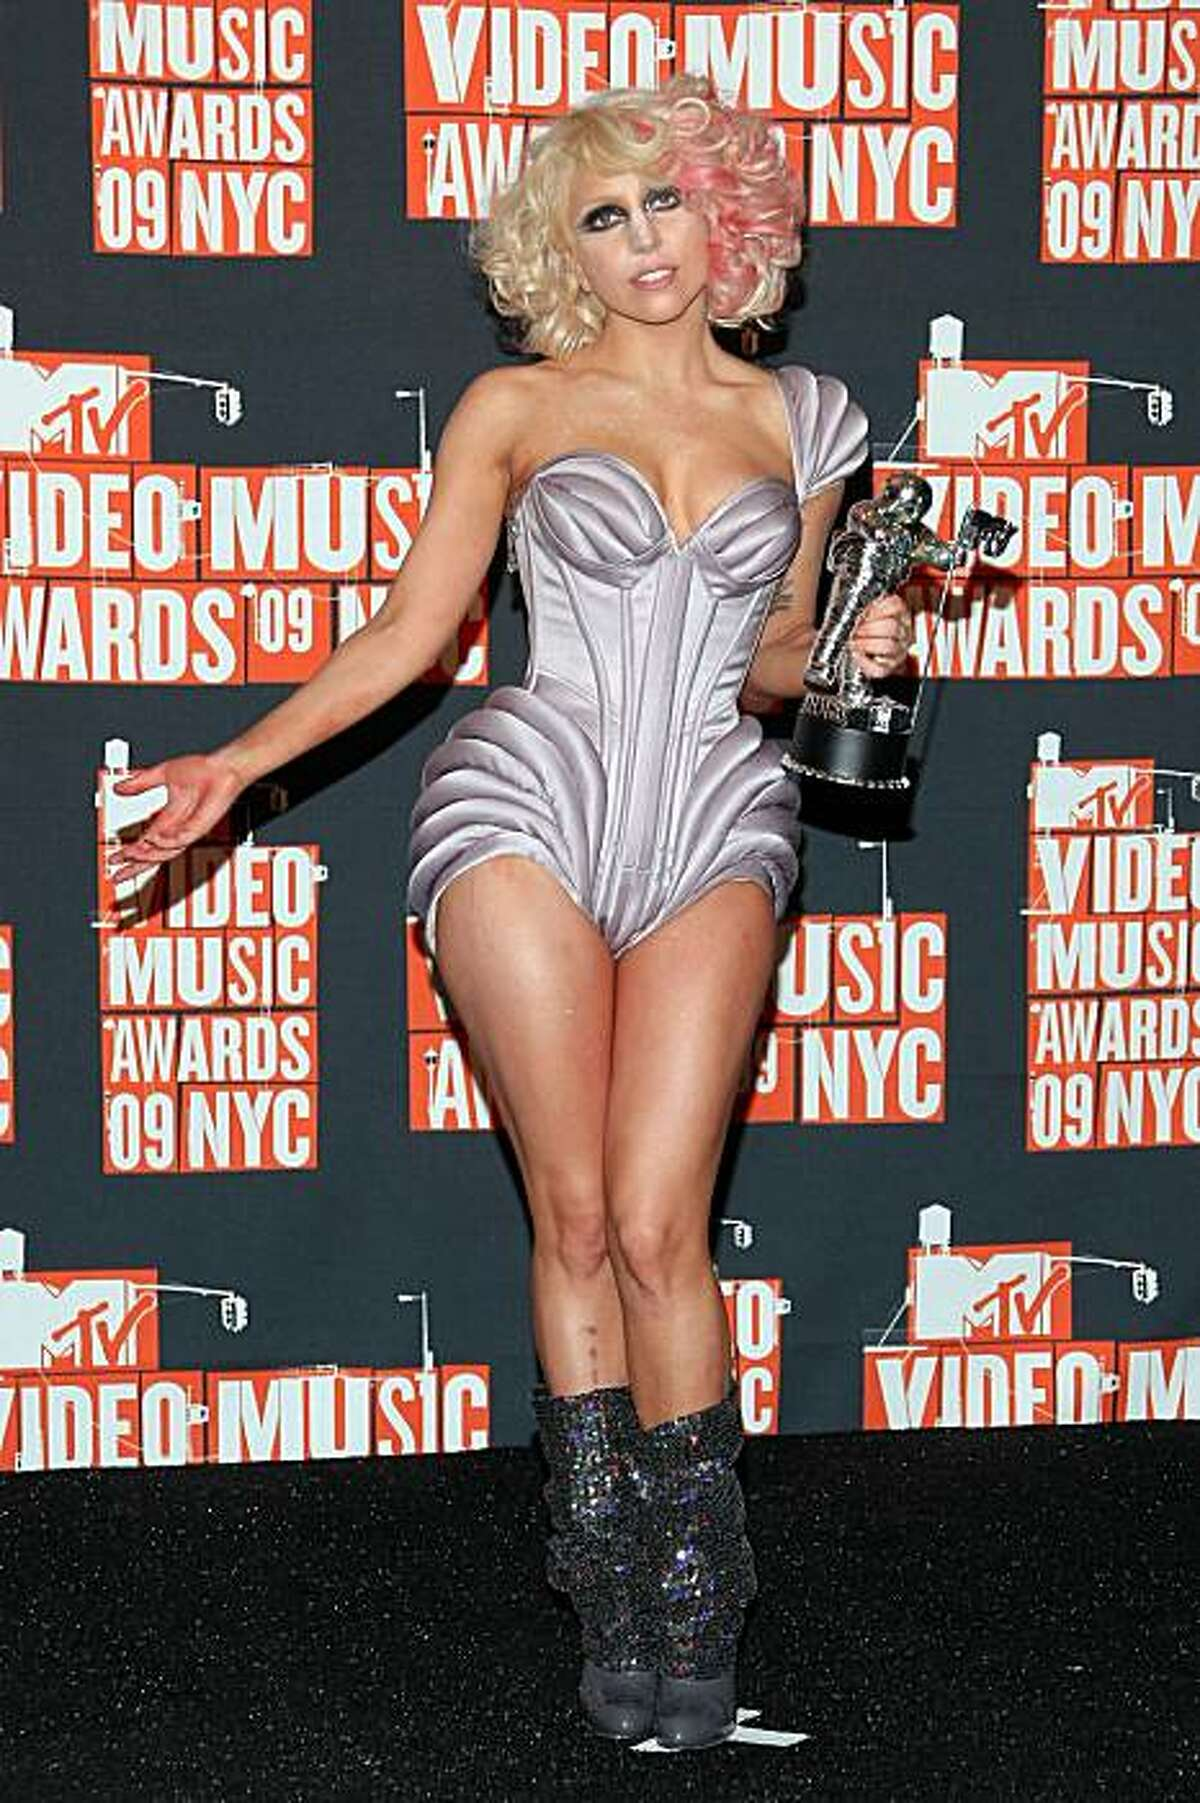 NEW YORK - SEPTEMBER 13: Lady Gaga poses in the pressroom during during the 2009 MTV Video Music Awards at Radio City Music Hall on September 13, 2009 in New York City. (Photo by Michael Loccisano/Getty Images)